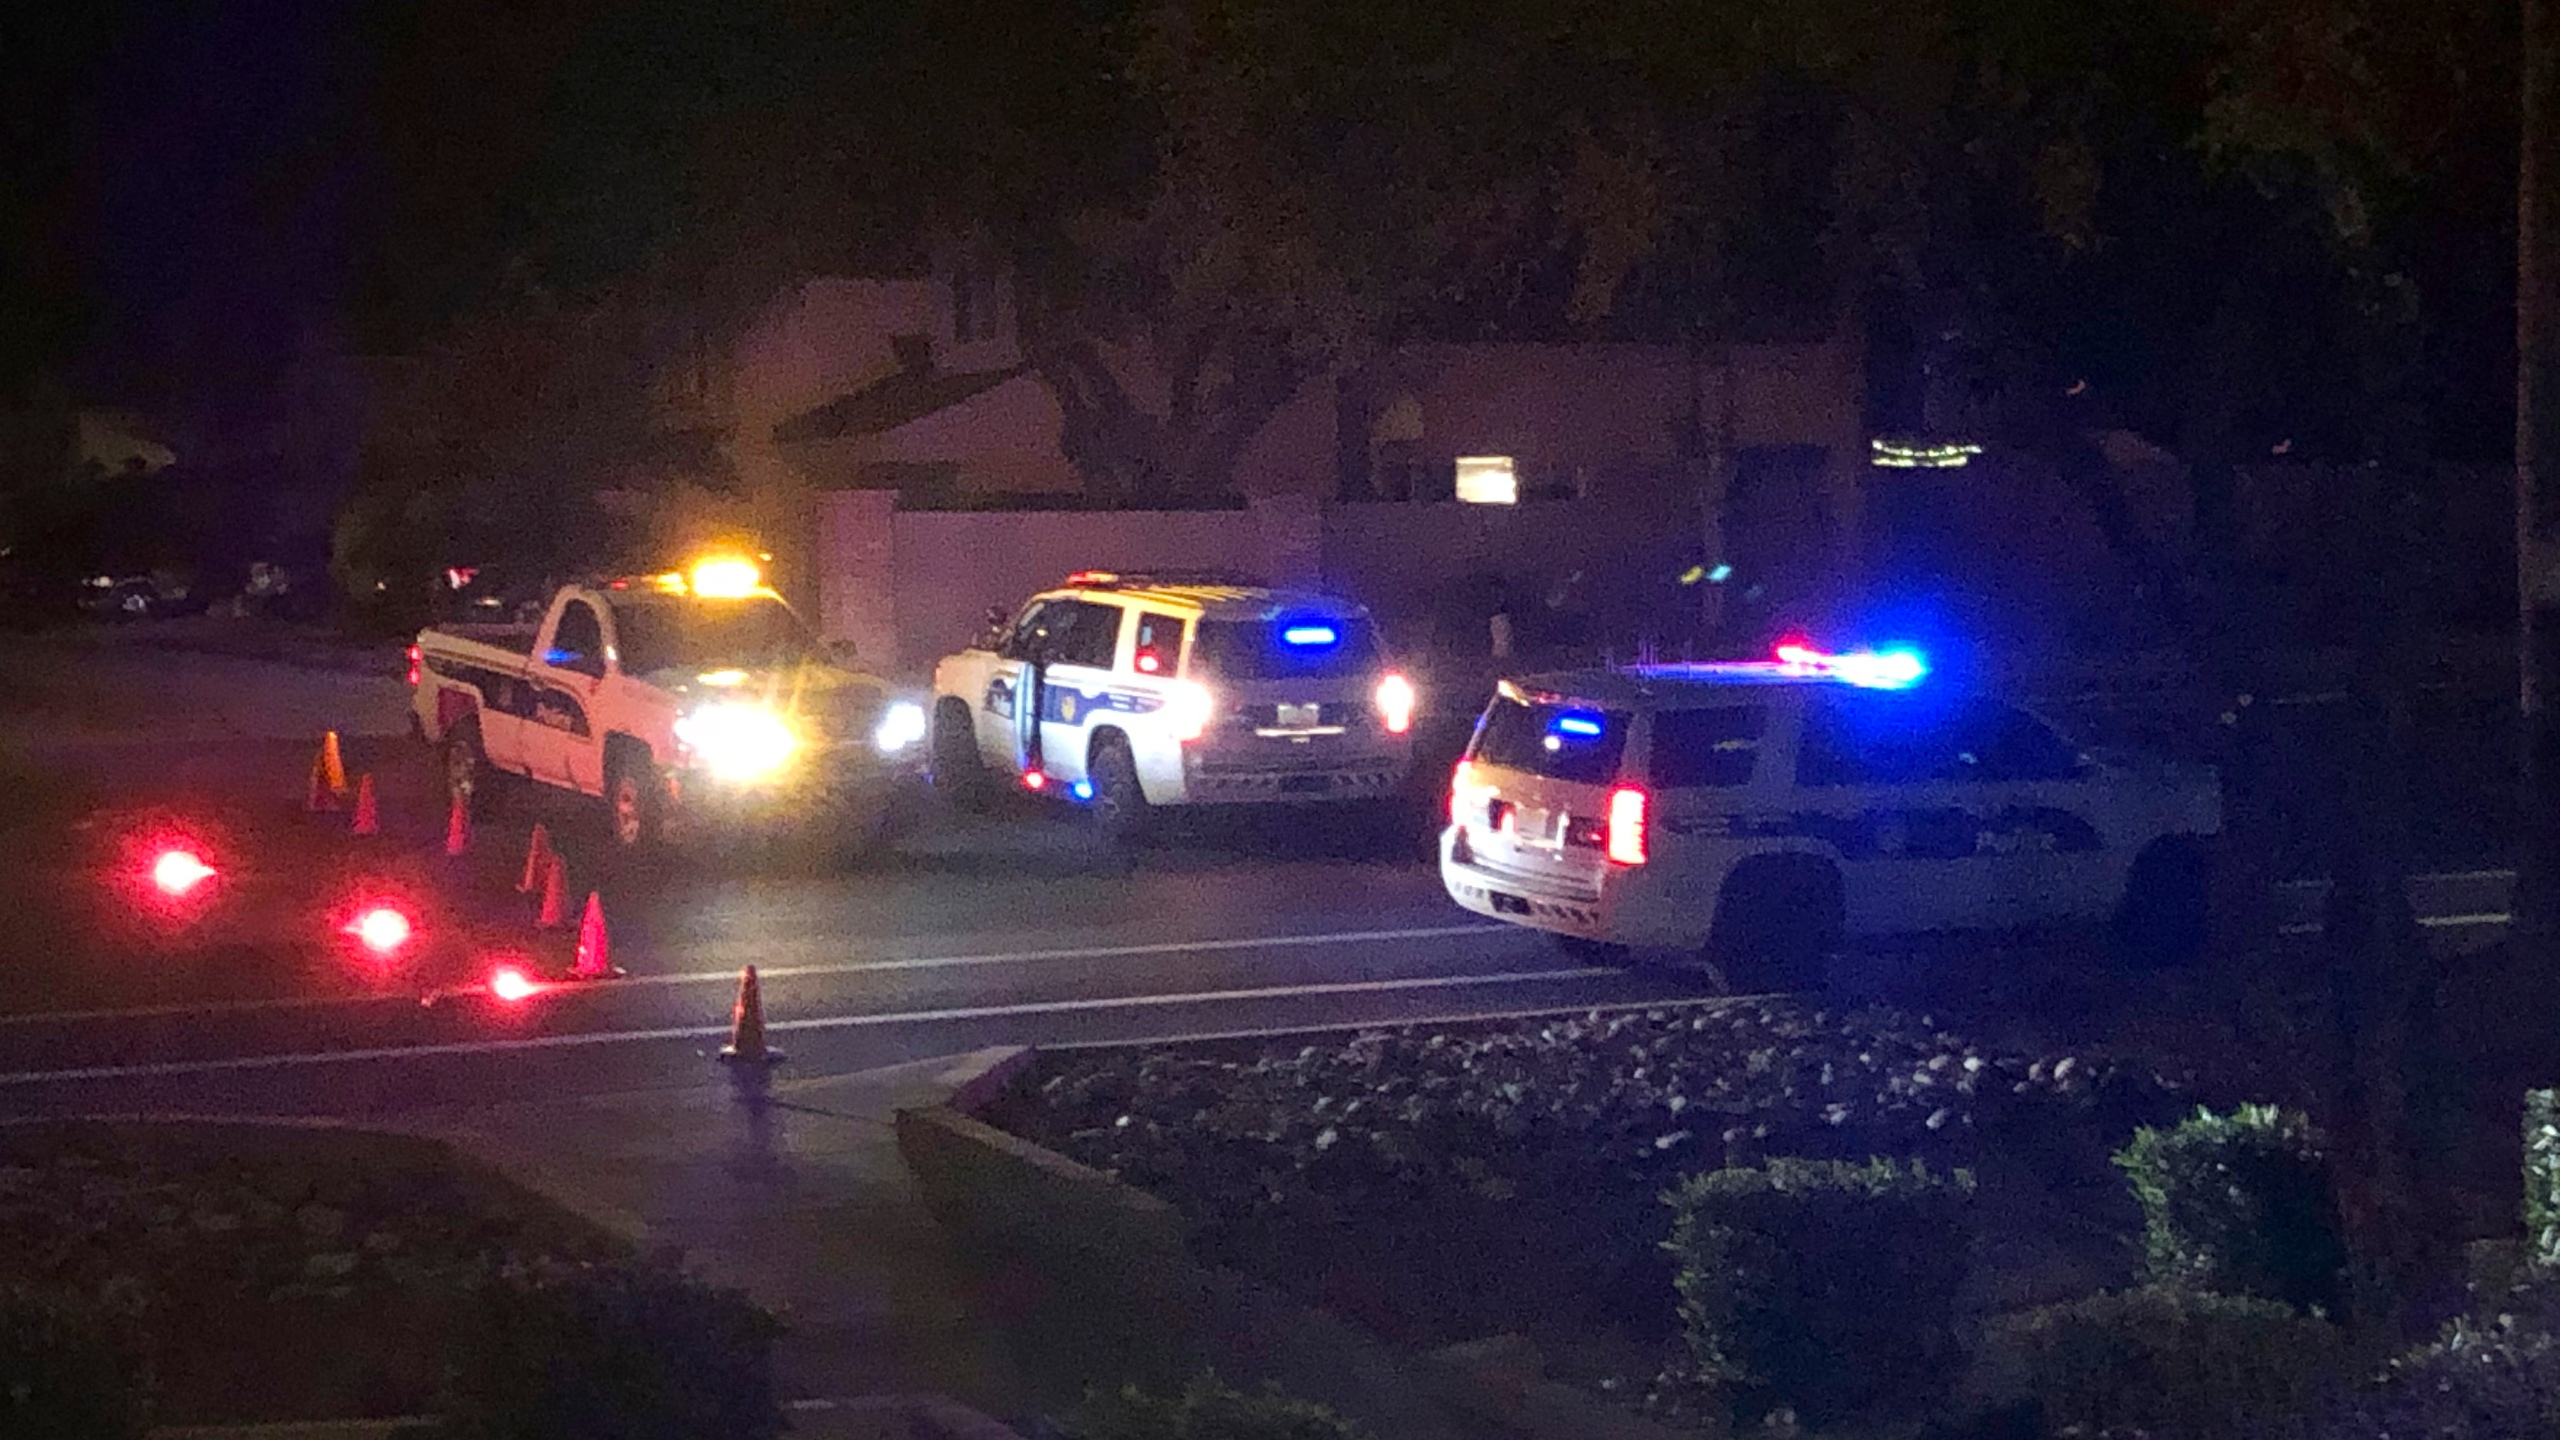 Phoenix Police Officer Killed 2 More Wounded In Shooting Wjhl Tri Cities News Weather Instant sound effect button of call an ambulance but not for me. 2